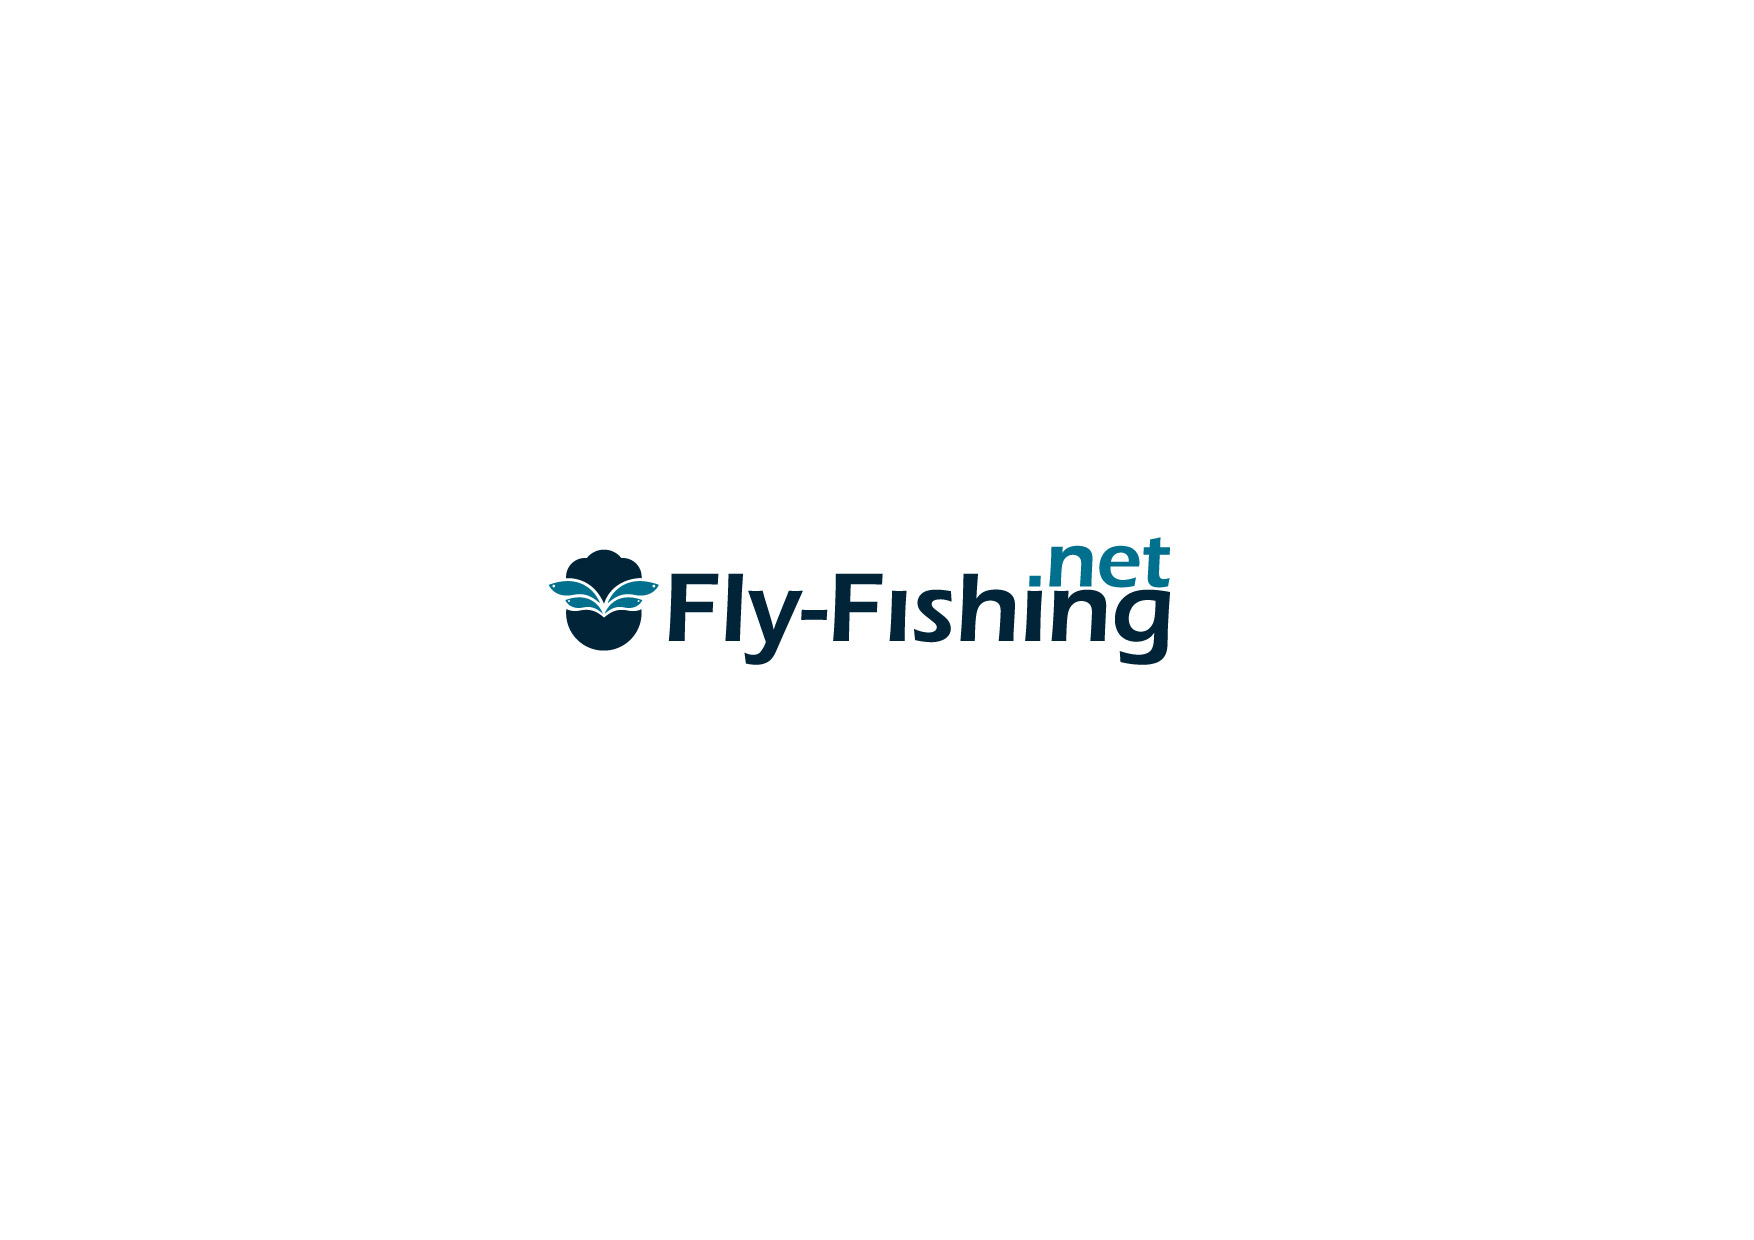 Logo Design by Osi Indra - Entry No. 49 in the Logo Design Contest Artistic Logo Design for fly-fishing.net.